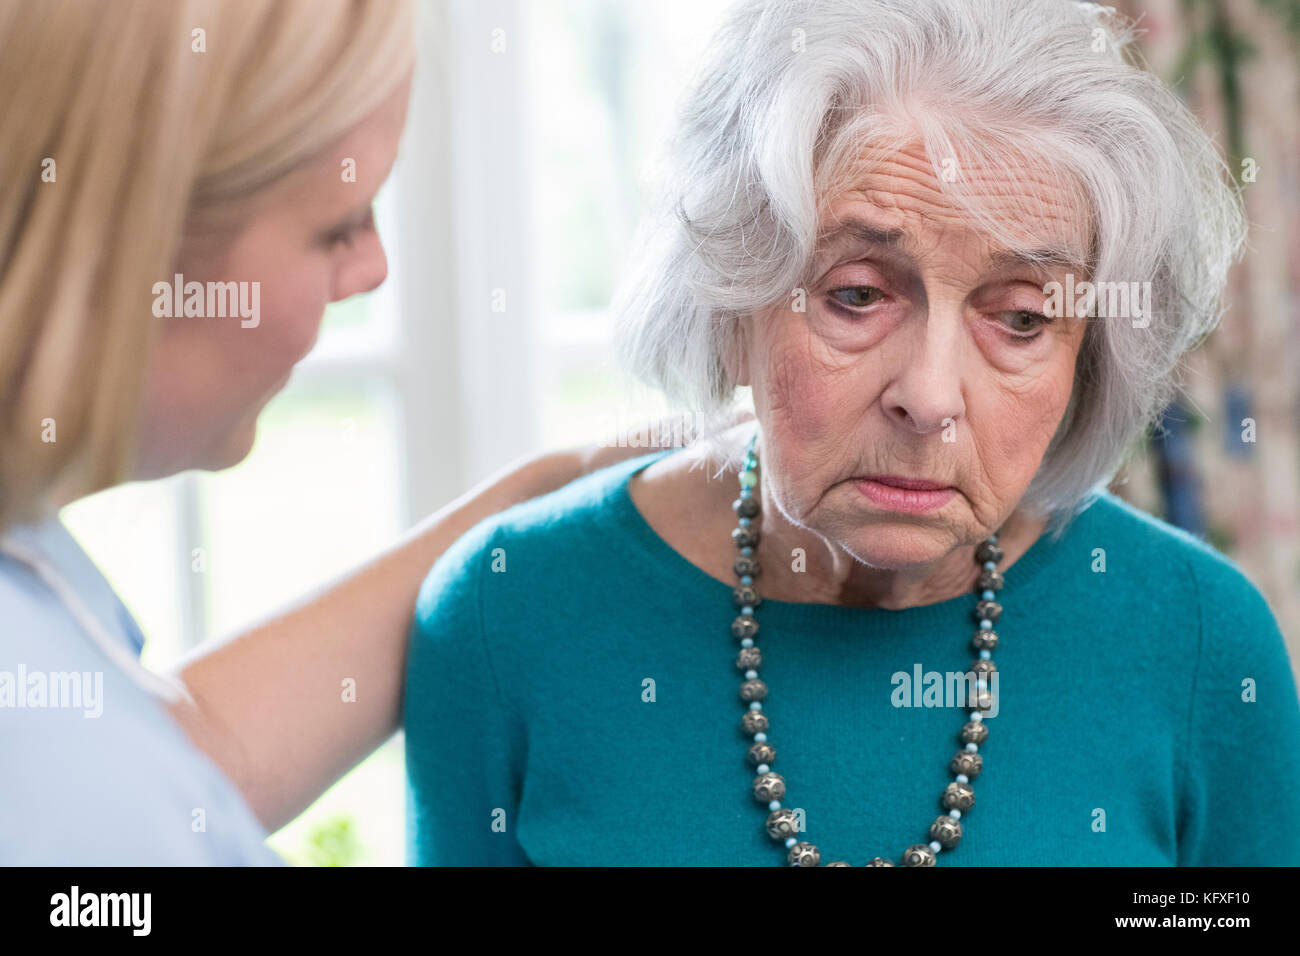 Care Worker Talking To Depressed Senior Woman At Home Stock Photo